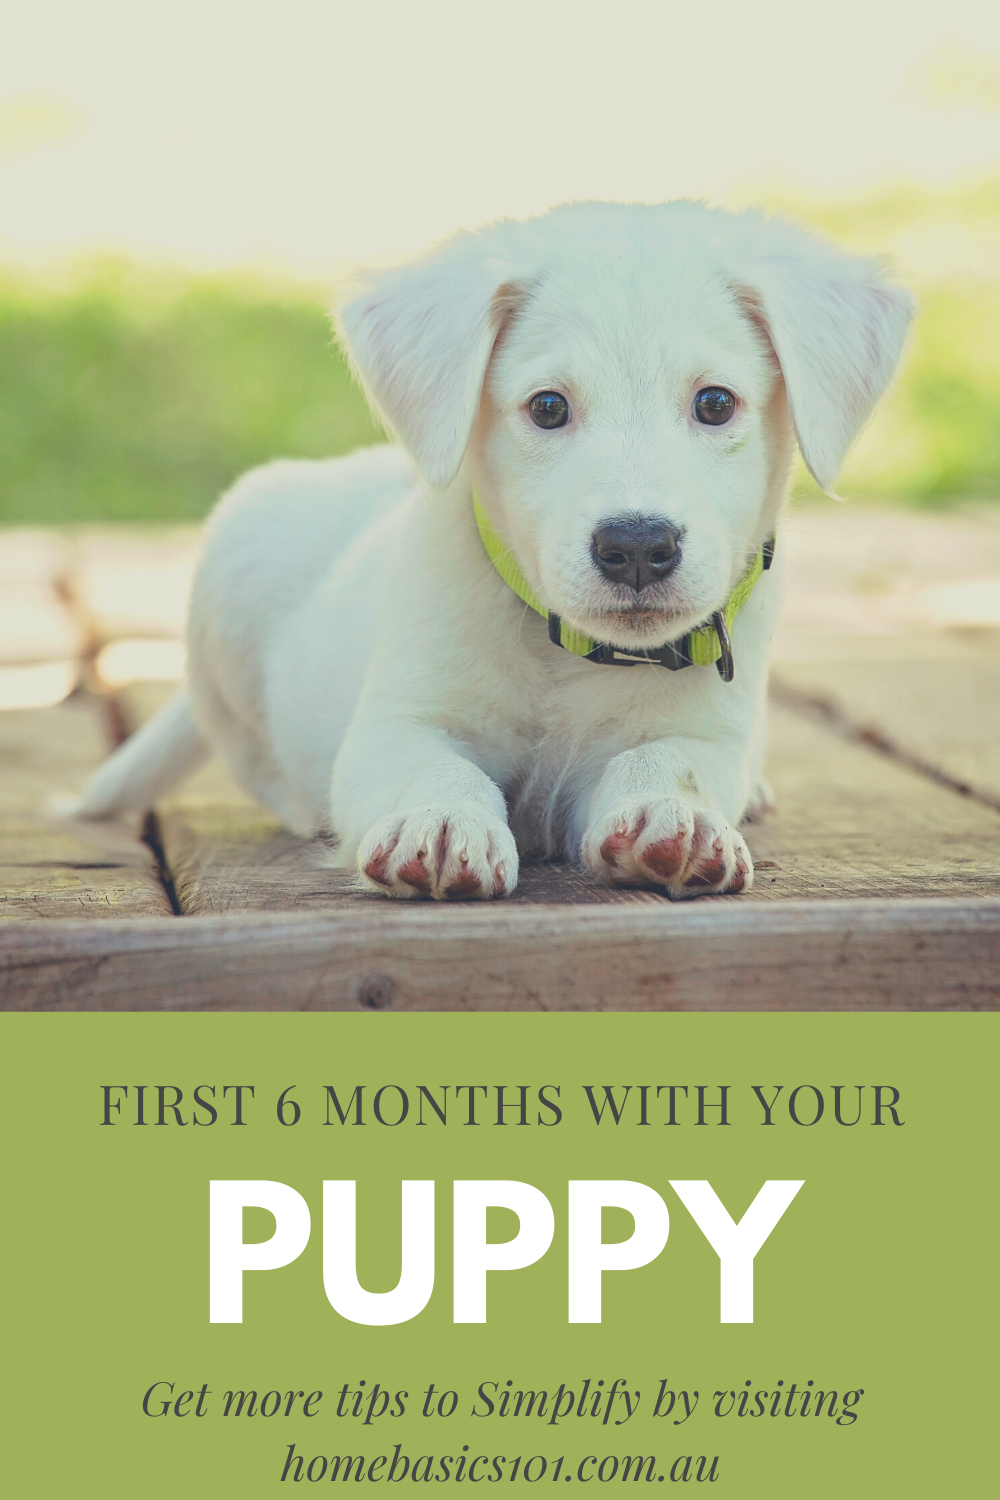 Tips on First 6 Months with your Puppy